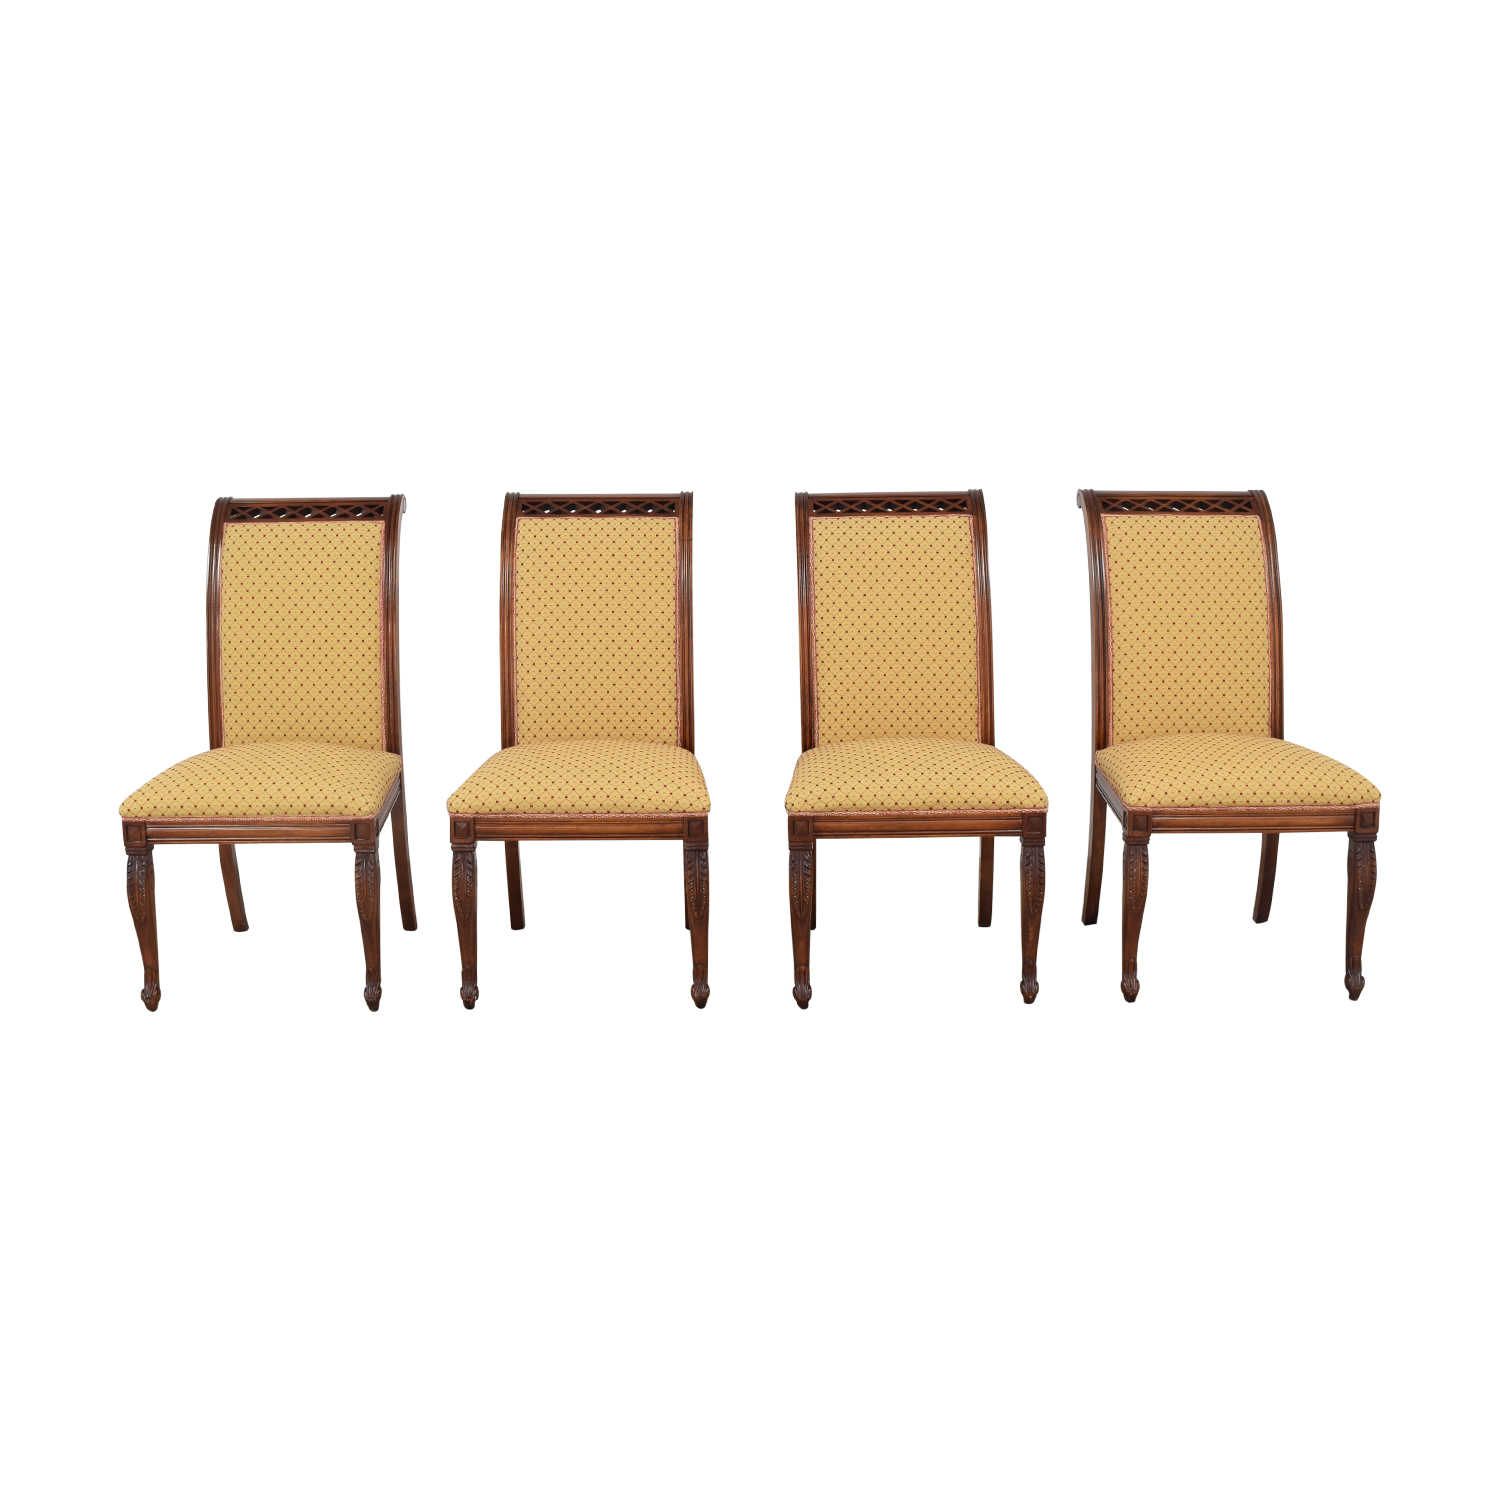 KPS Furnishings KPS Furnishings Custom Dining Chairs yellow & brown